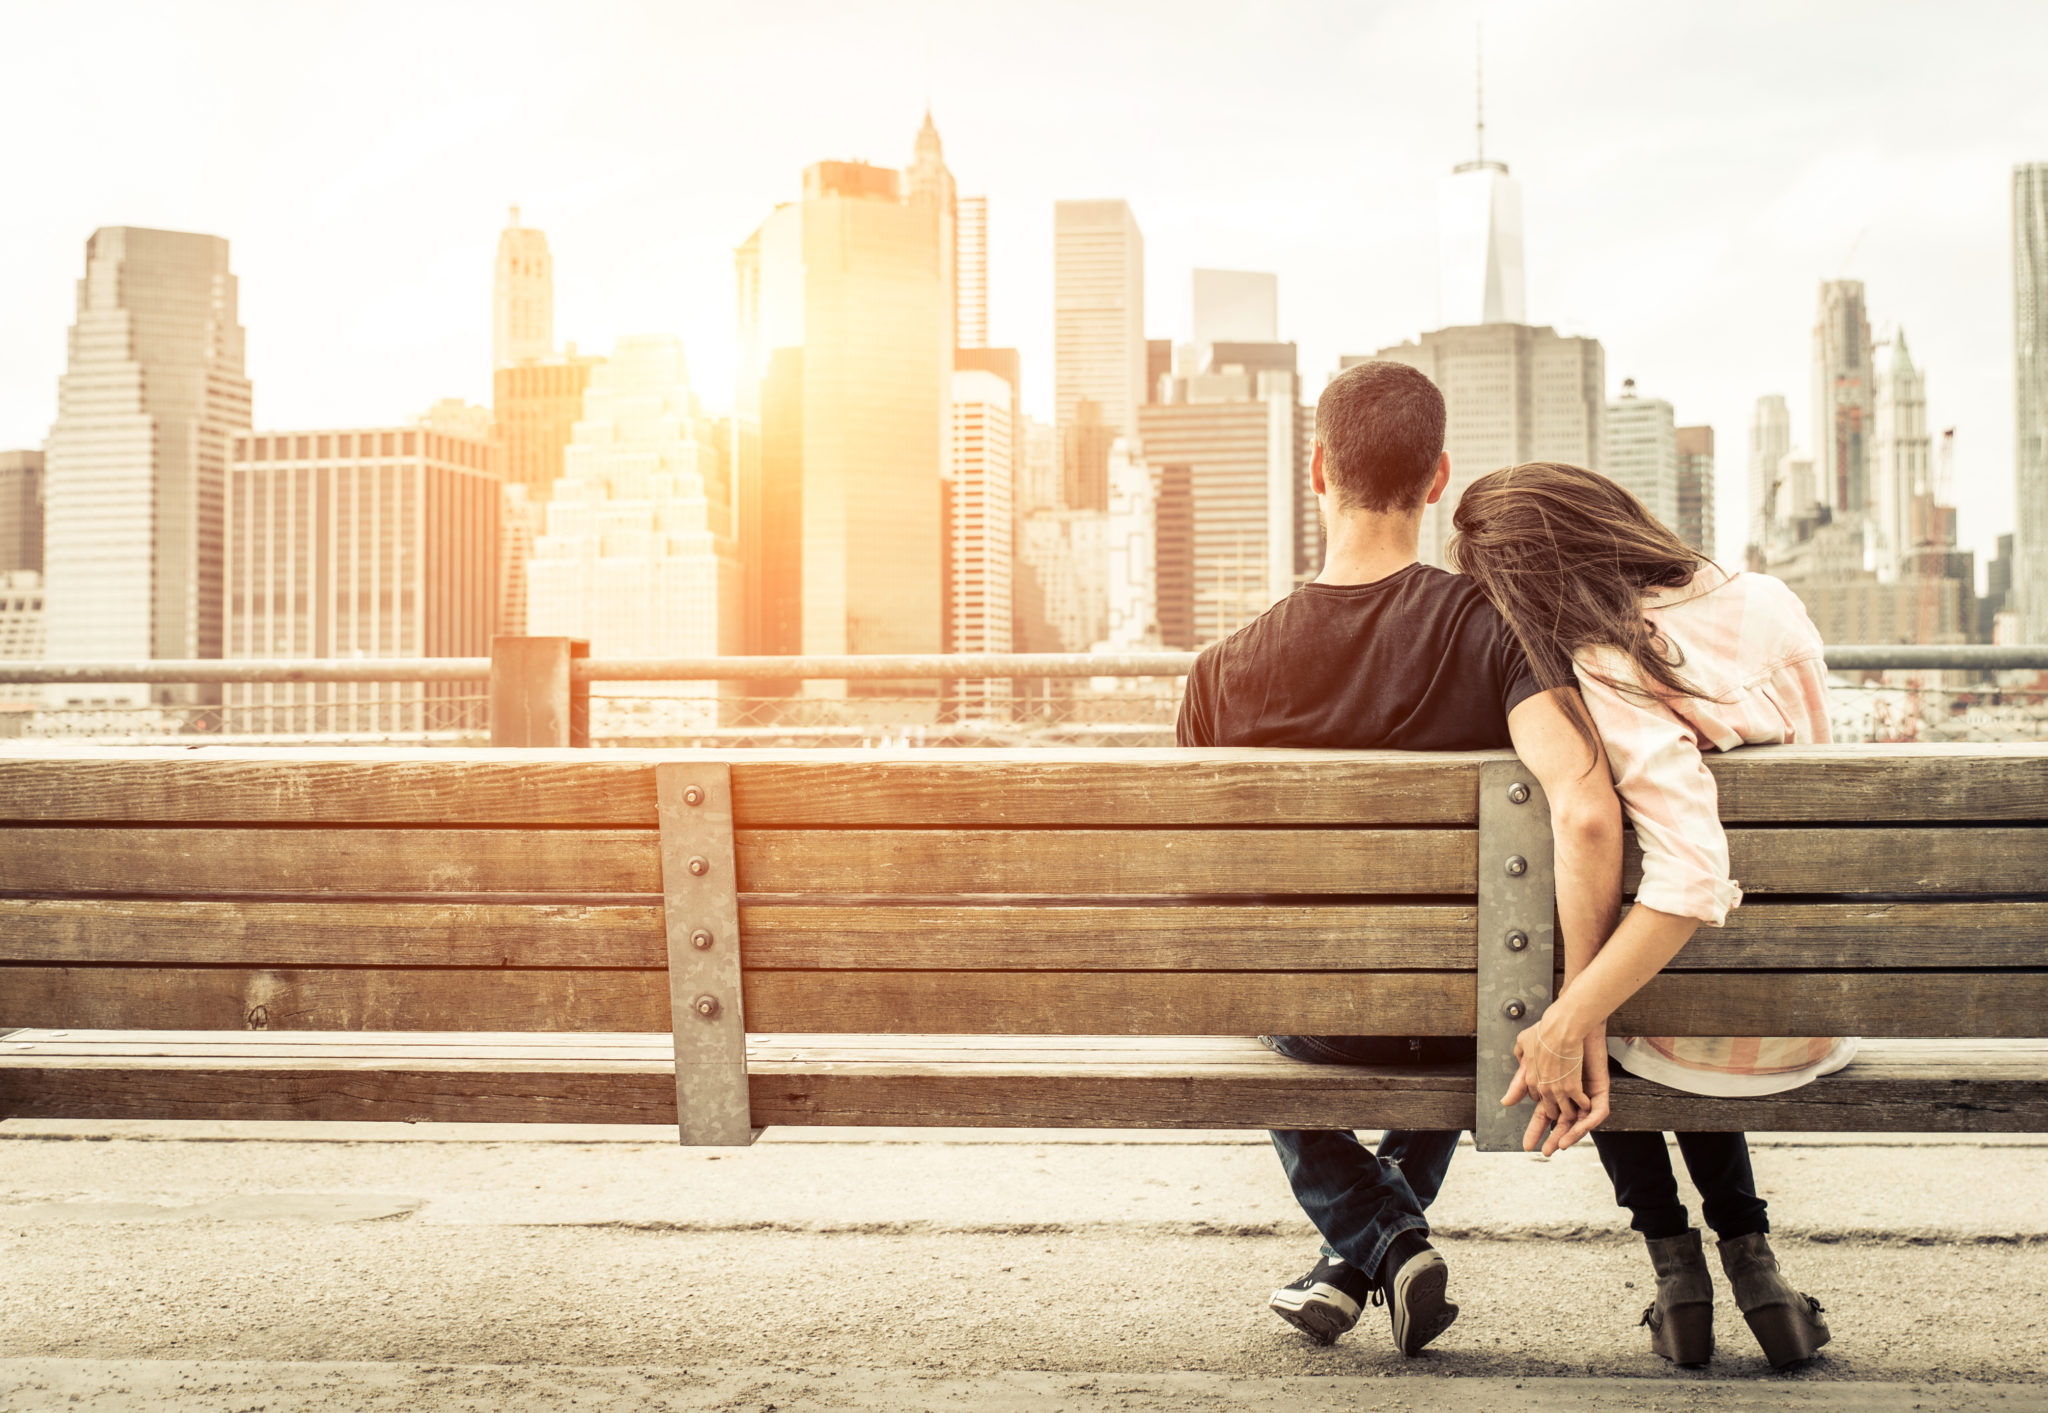 7 Lessons I've Learned from Living with the Love of My Life